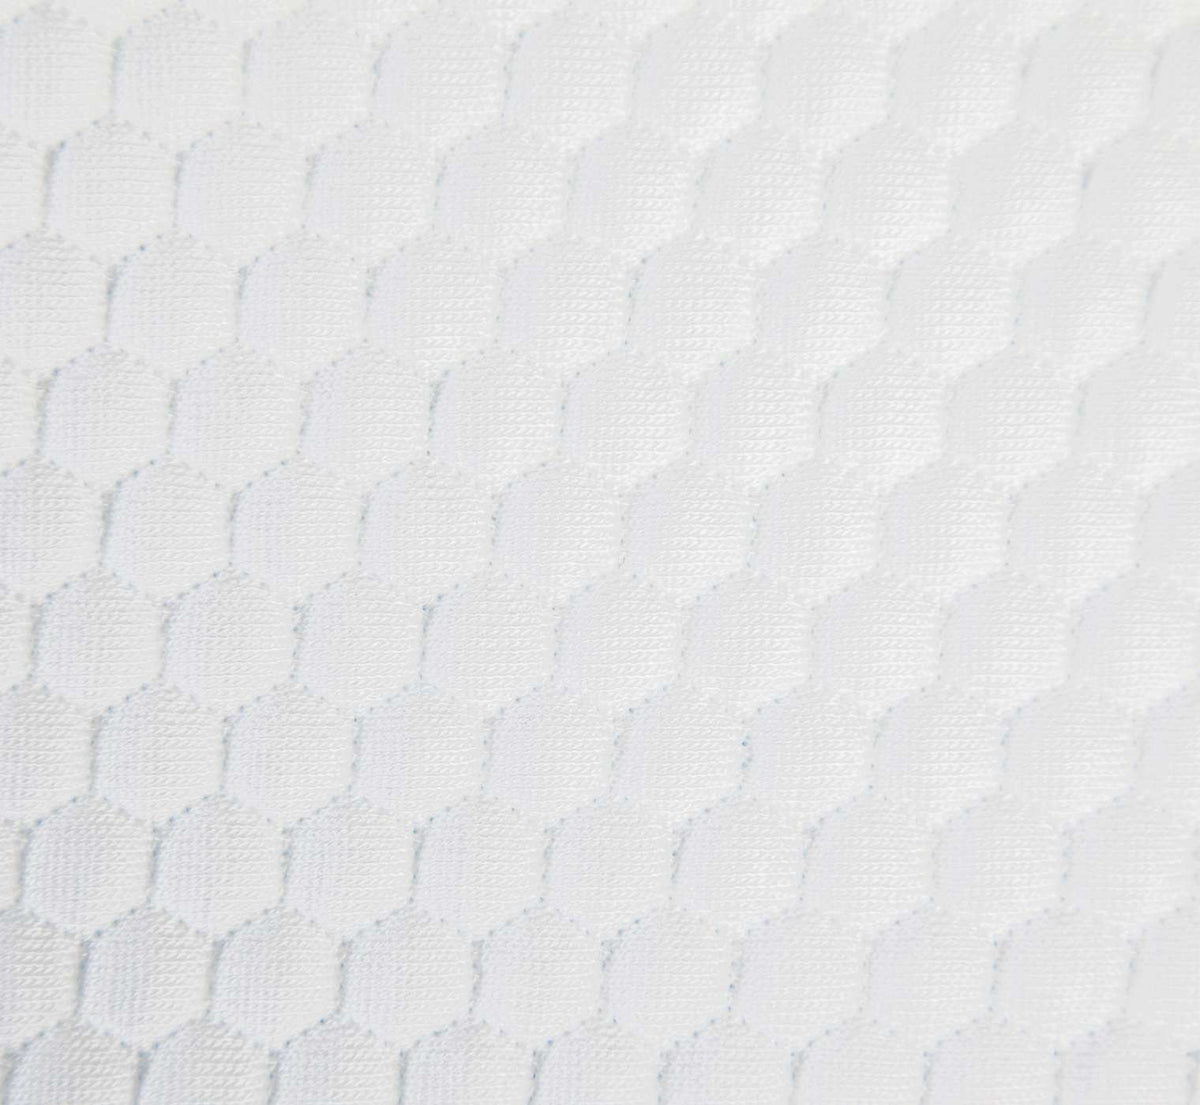 mattress texture. The HUGGE Mattress Texture E